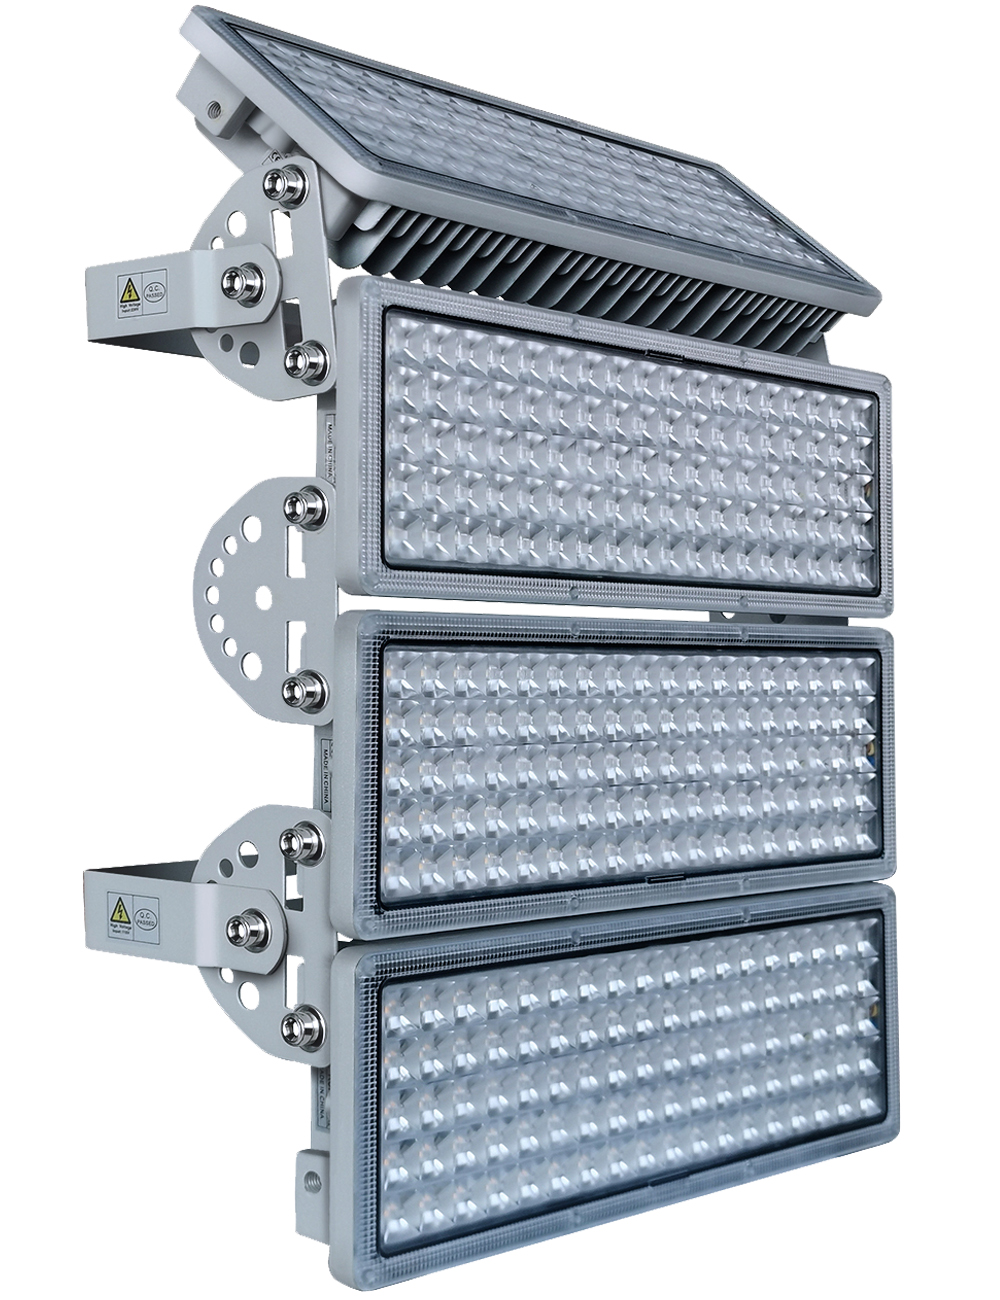 50W 100W 200W 300W 400W Outdoor LED Flood Light AC110V-220V Waterproof LED Floodlights Spotlight Outdoor Reflector Projector Lam